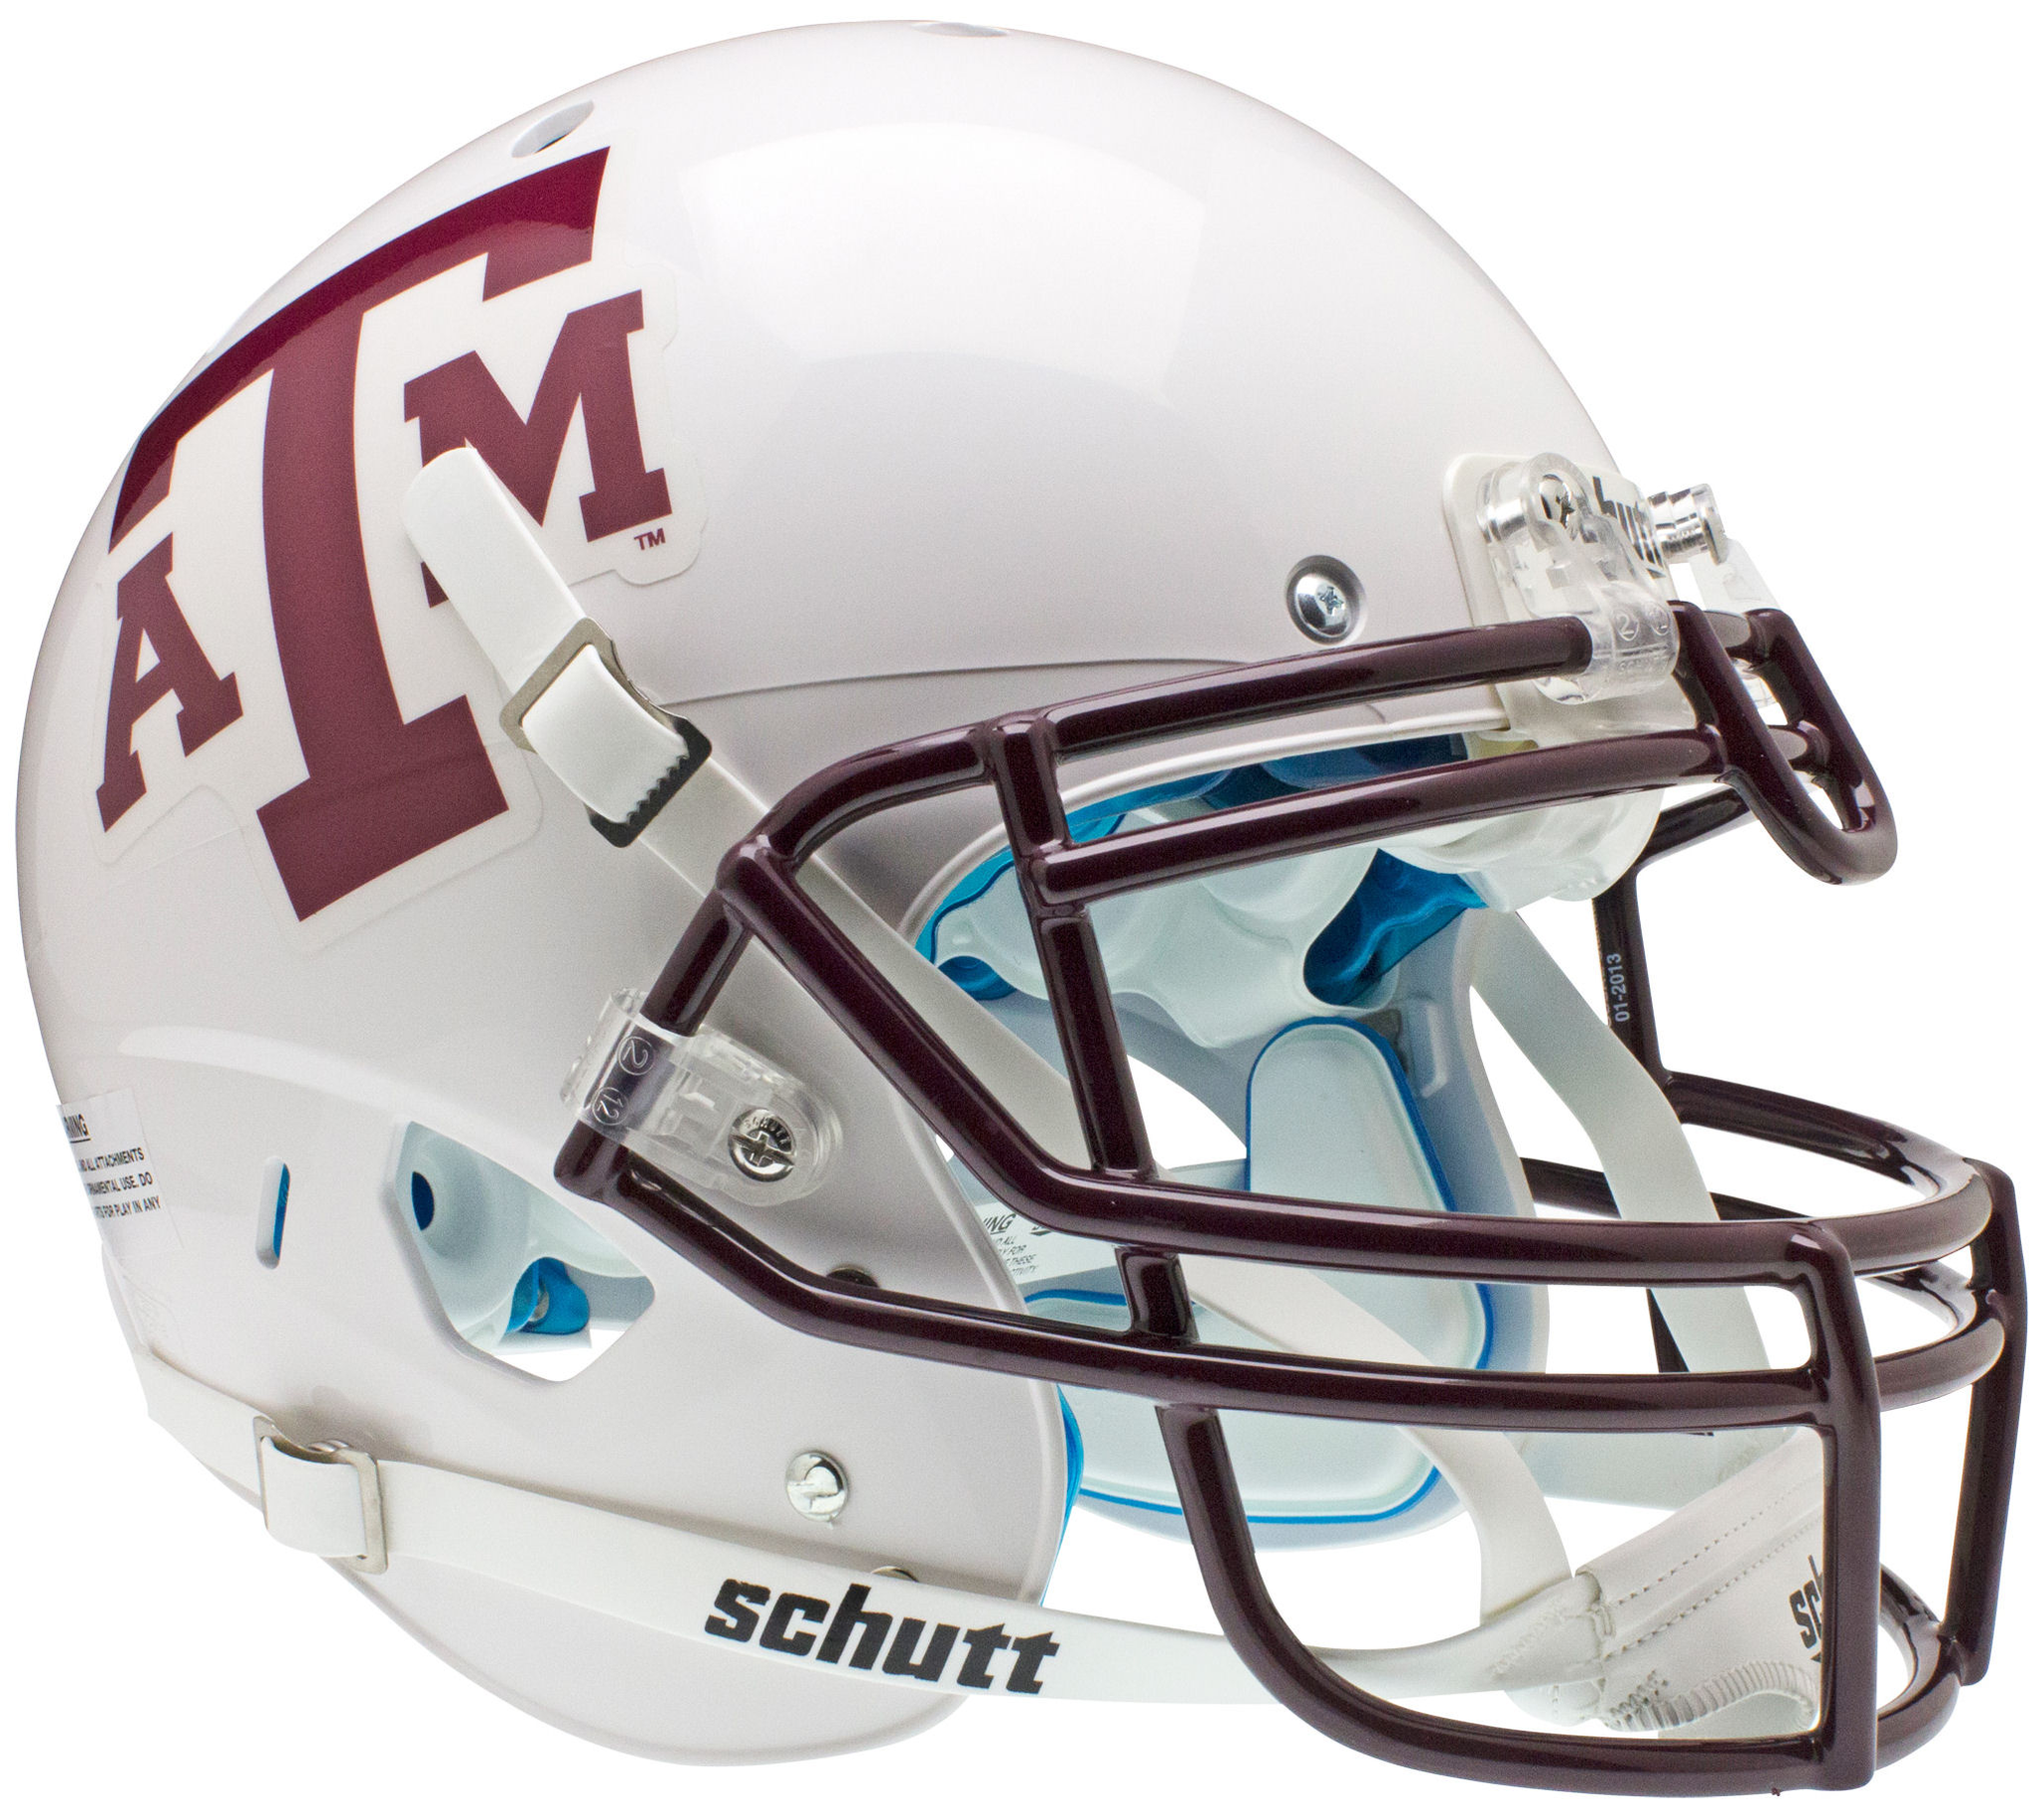 Texas A M Aggies Authentic College Xp Football Helmet Schutt White Maroon Mask Football Helmets South Carolina Gamecocks Texas Tech Red Raiders